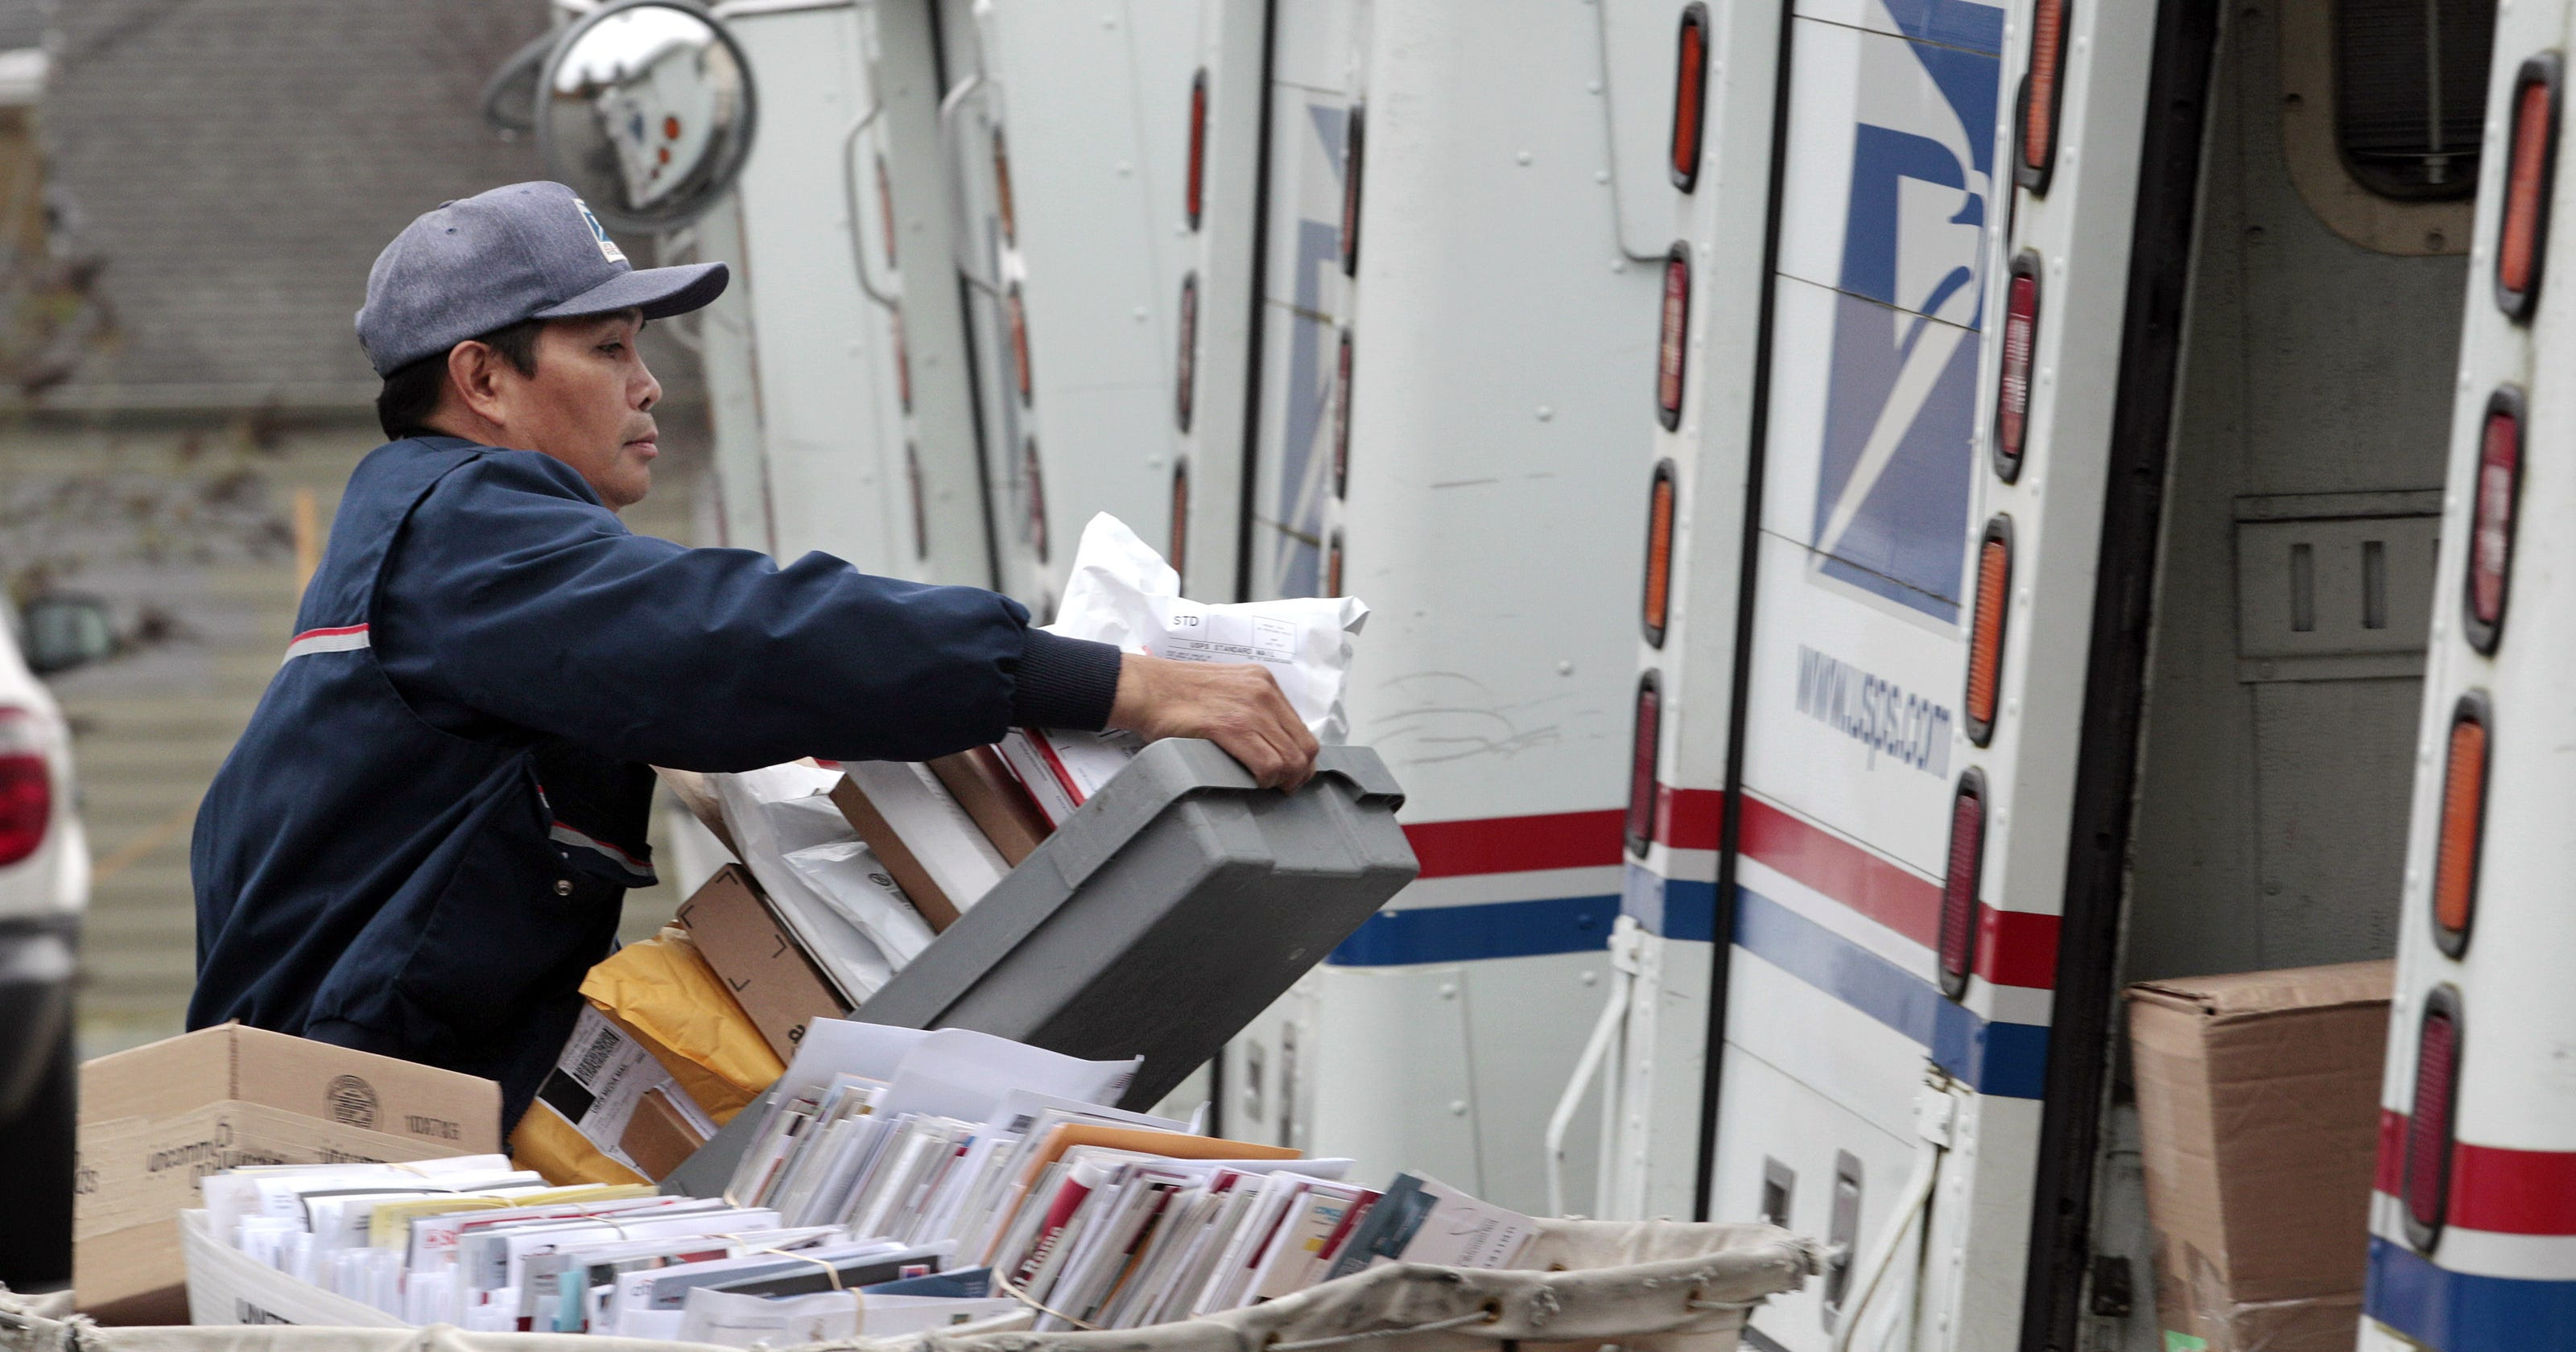 Postal Service lawyer claims immunity from traffic laws